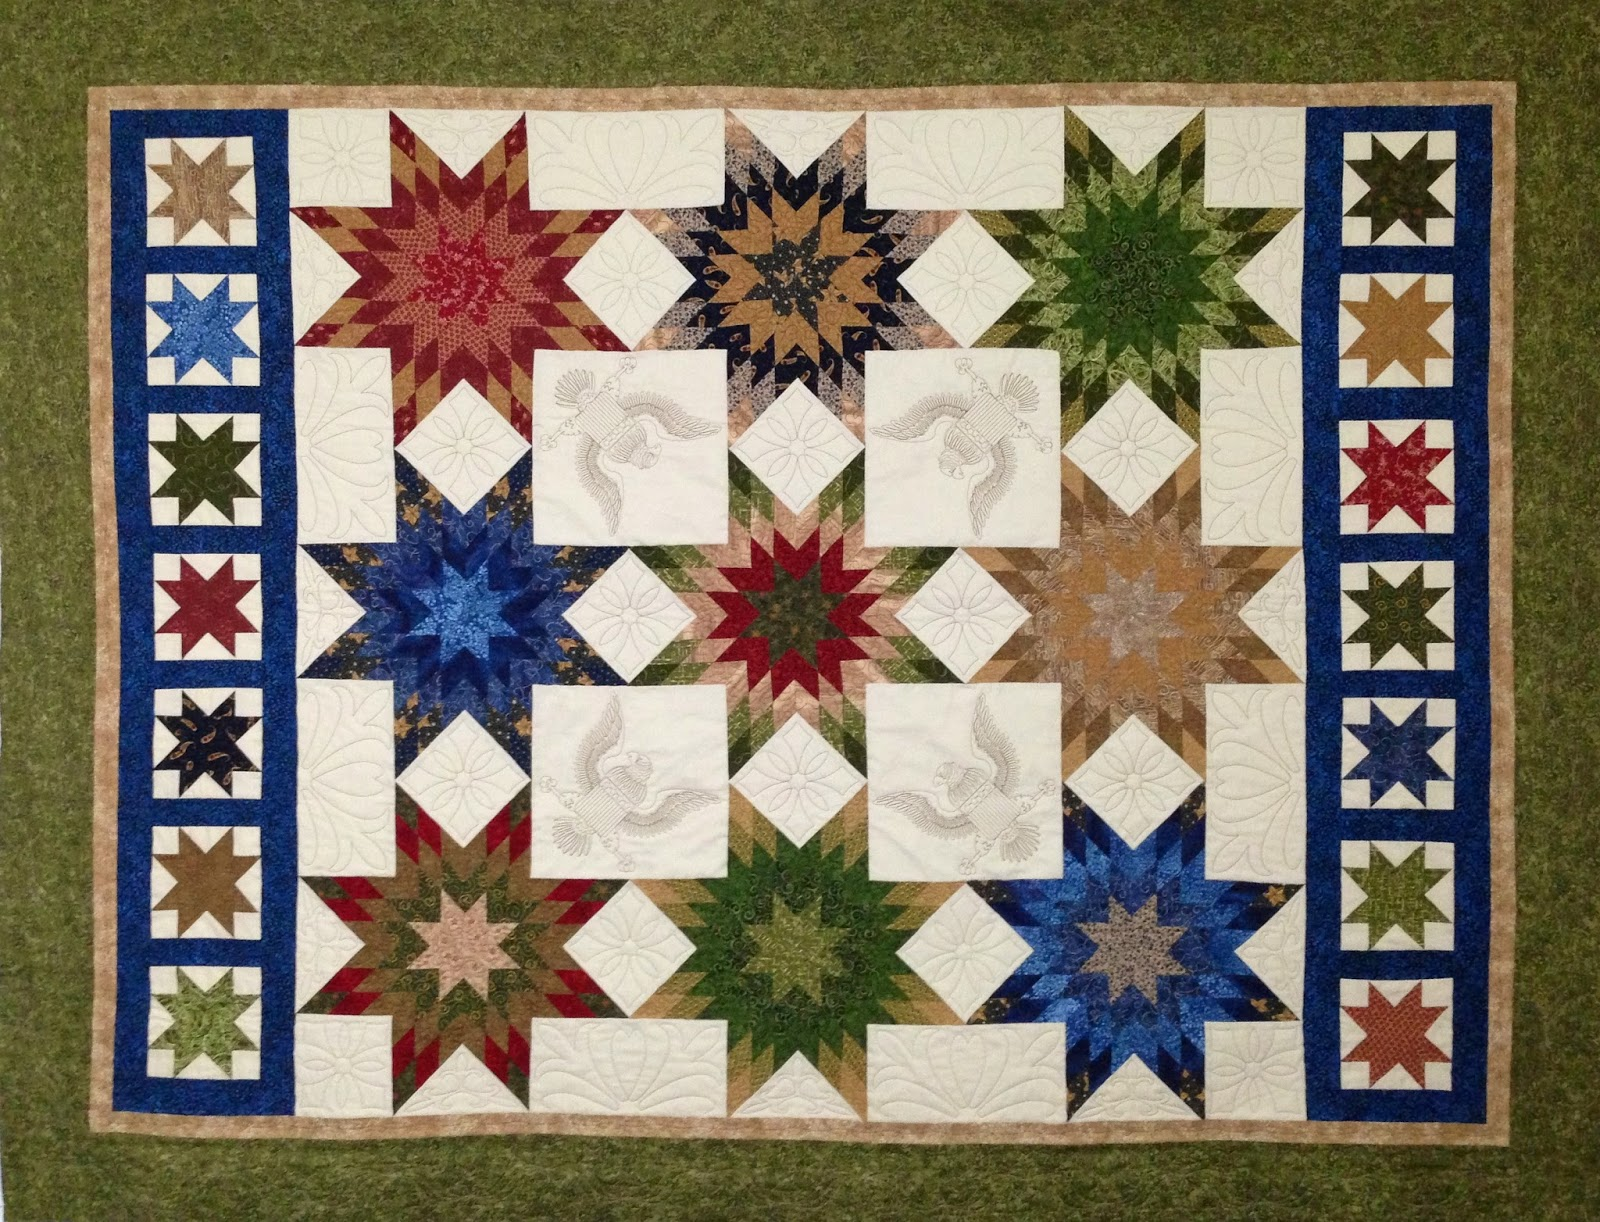 Becky Hobza Eagle Scout Quilt